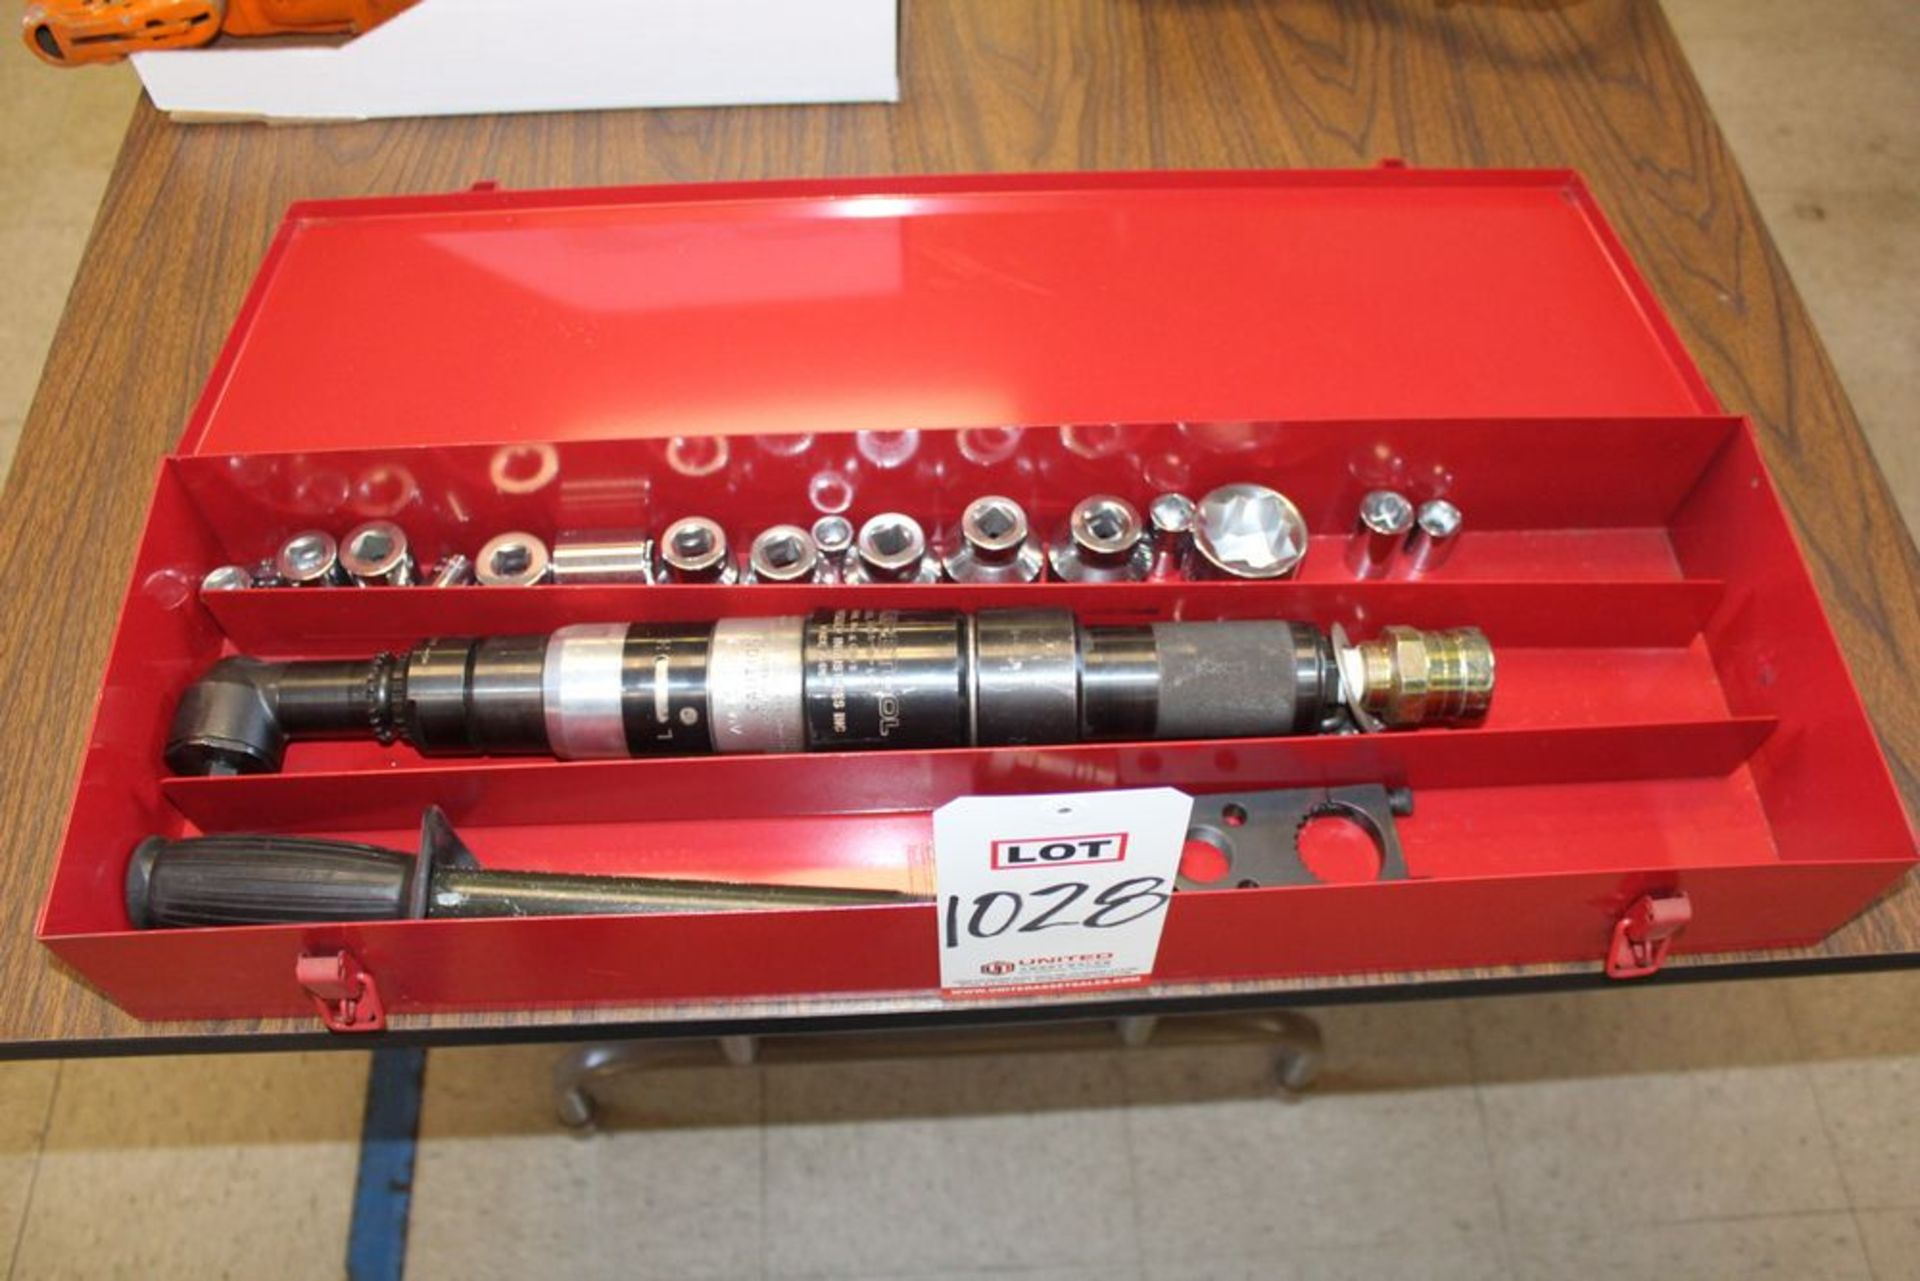 "Lot 1028 - AIRETOOL 1/2"" DRIVE PNEUMATIC RIGHT ANGLE RATCHET W/ SOCKETS, (LUNCHROOM)"